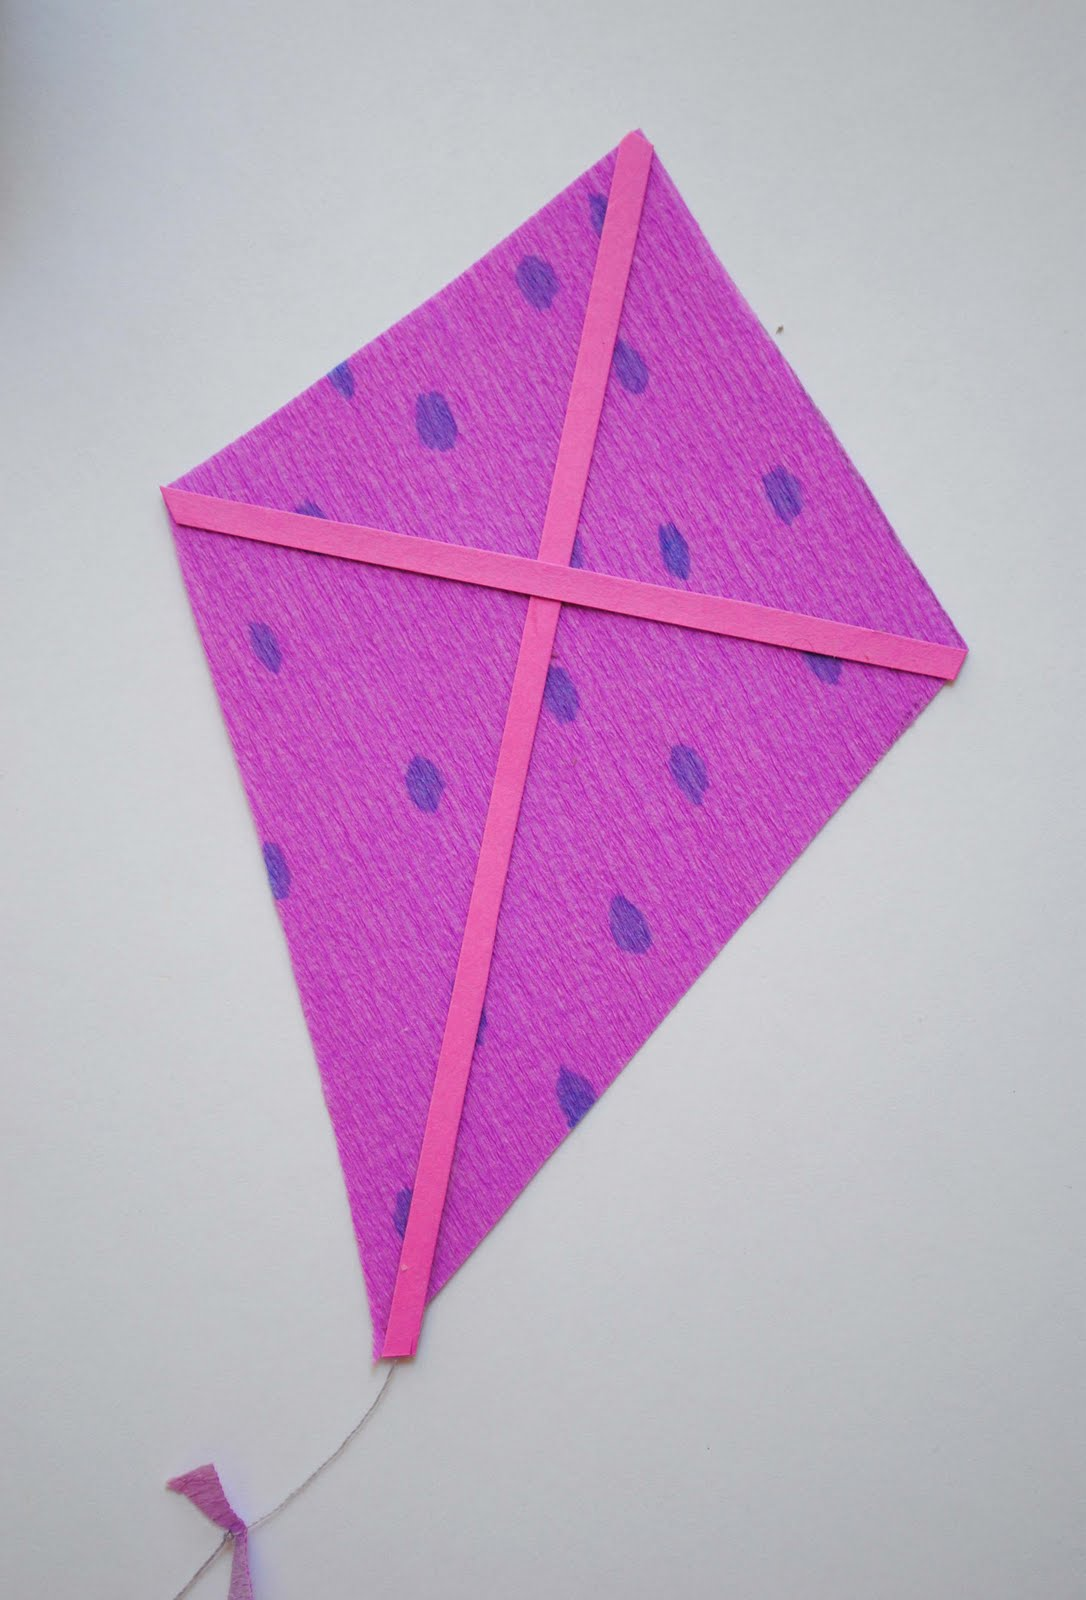 homemade kites images reverse search